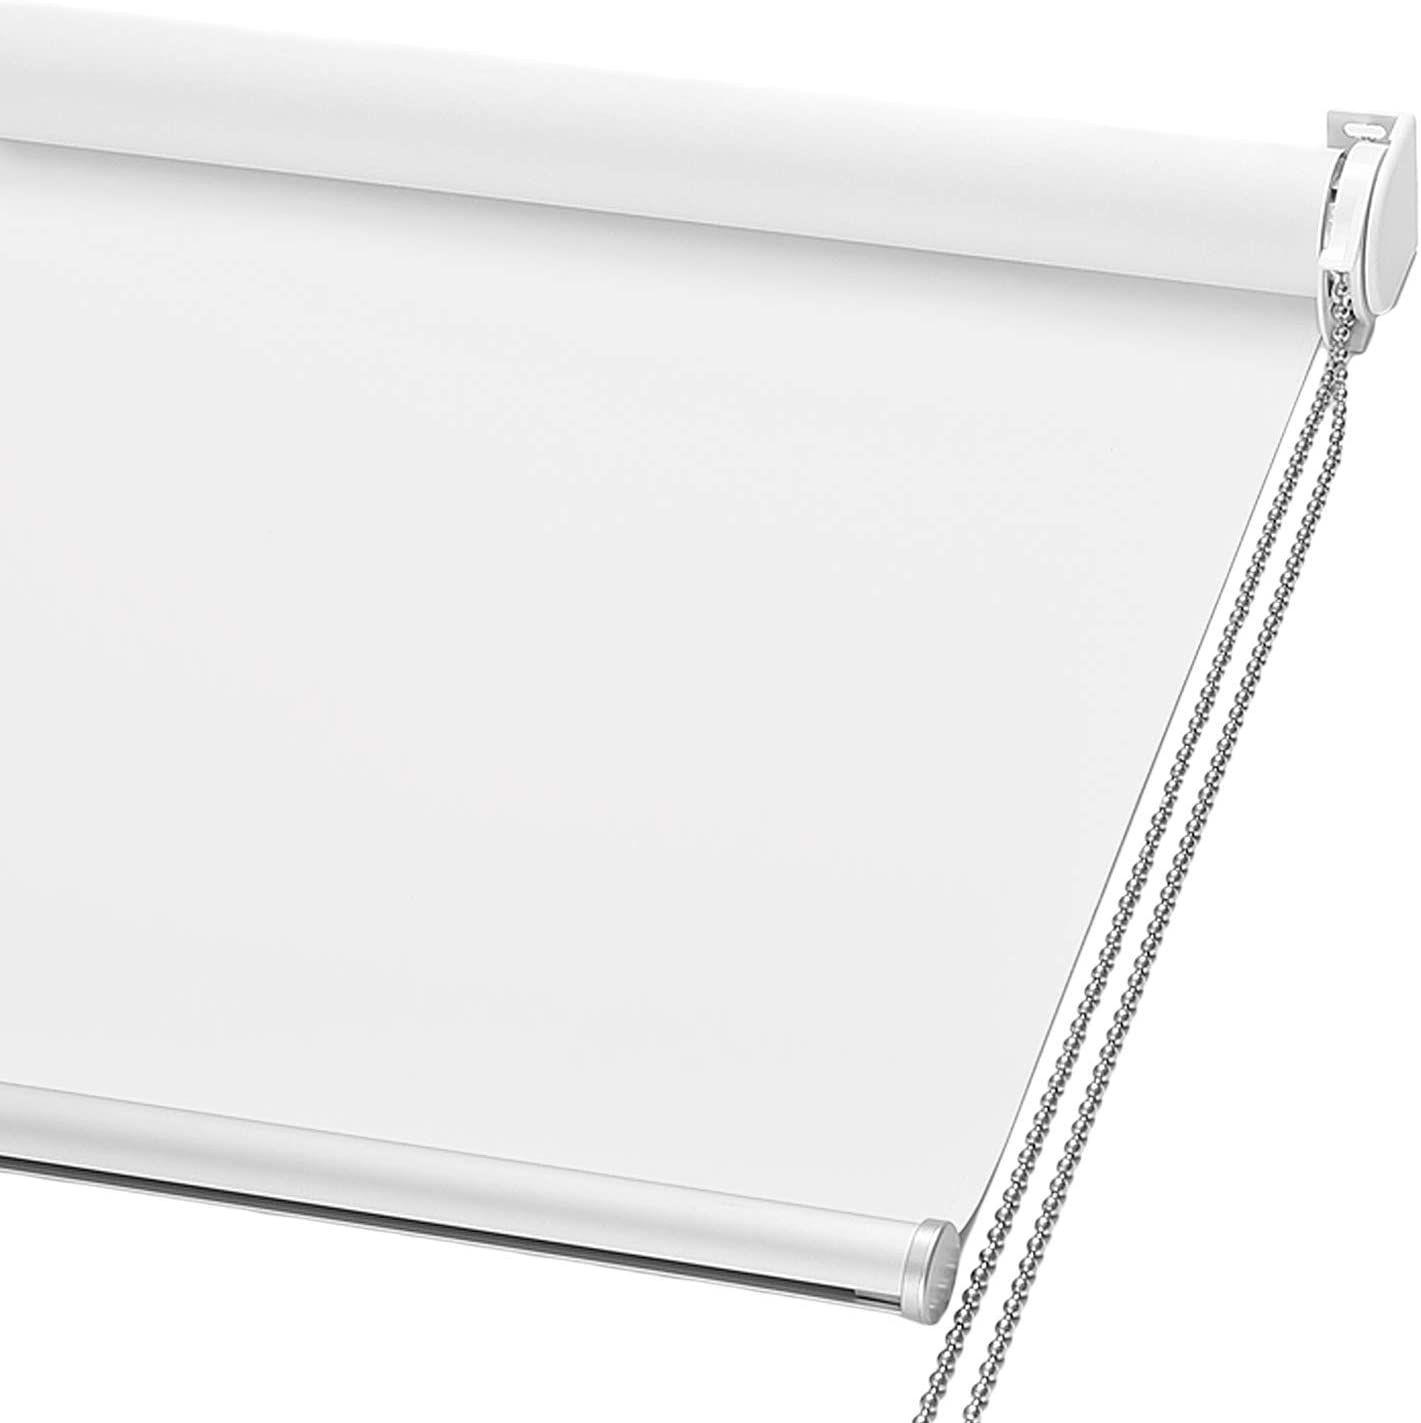 ChrisDowa 100% Blackout Roller Shade, Window Blind with Thermal Insulated, UV Protection Fabric. Total Blackout Roller Blind for Office and Home. Easy to Install. White,58